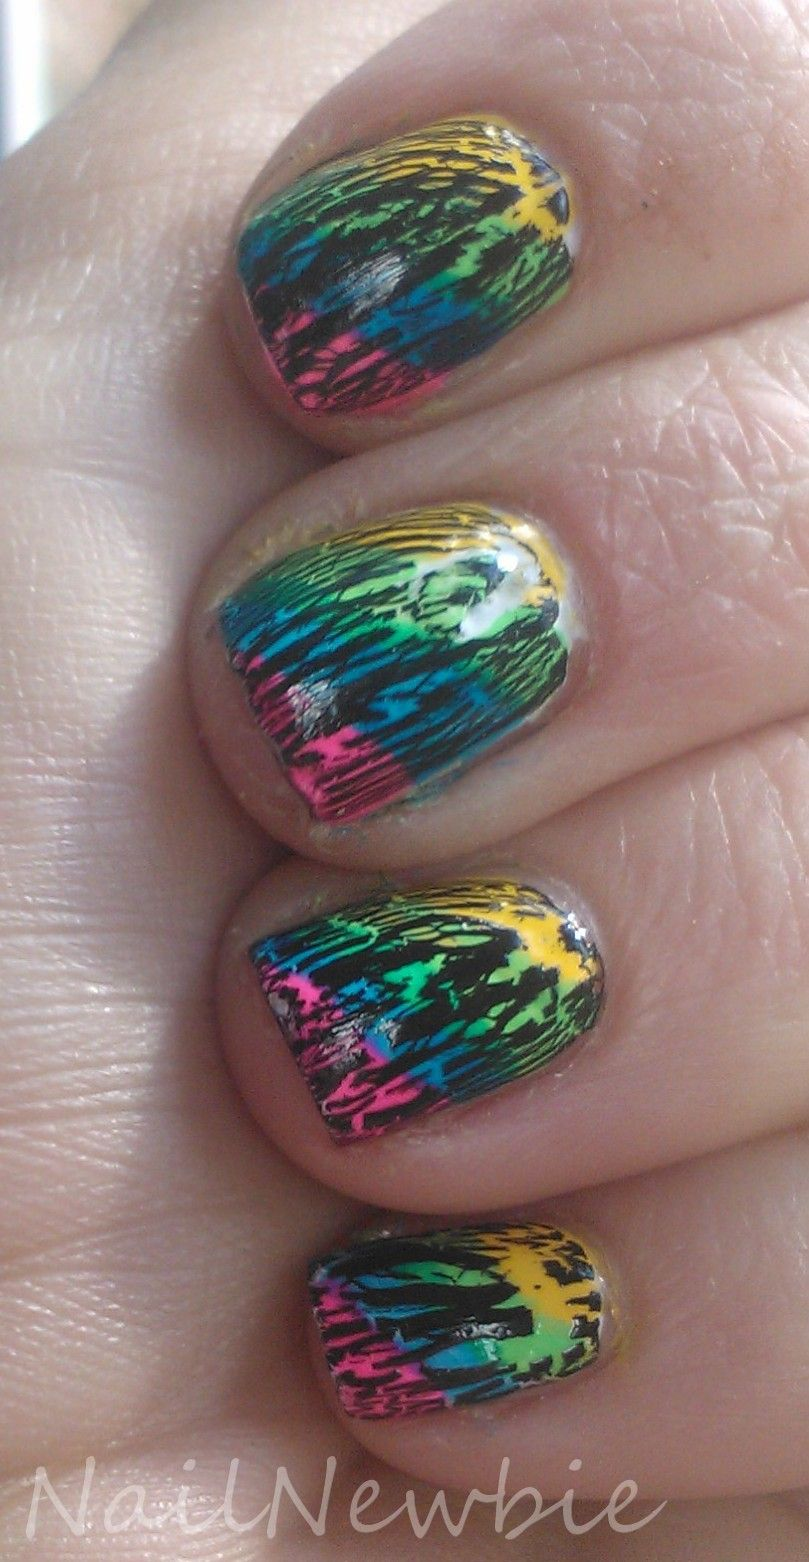 Shattered Neons Nail Newbie   Cute Nails   Pinterest   Neon nails ...